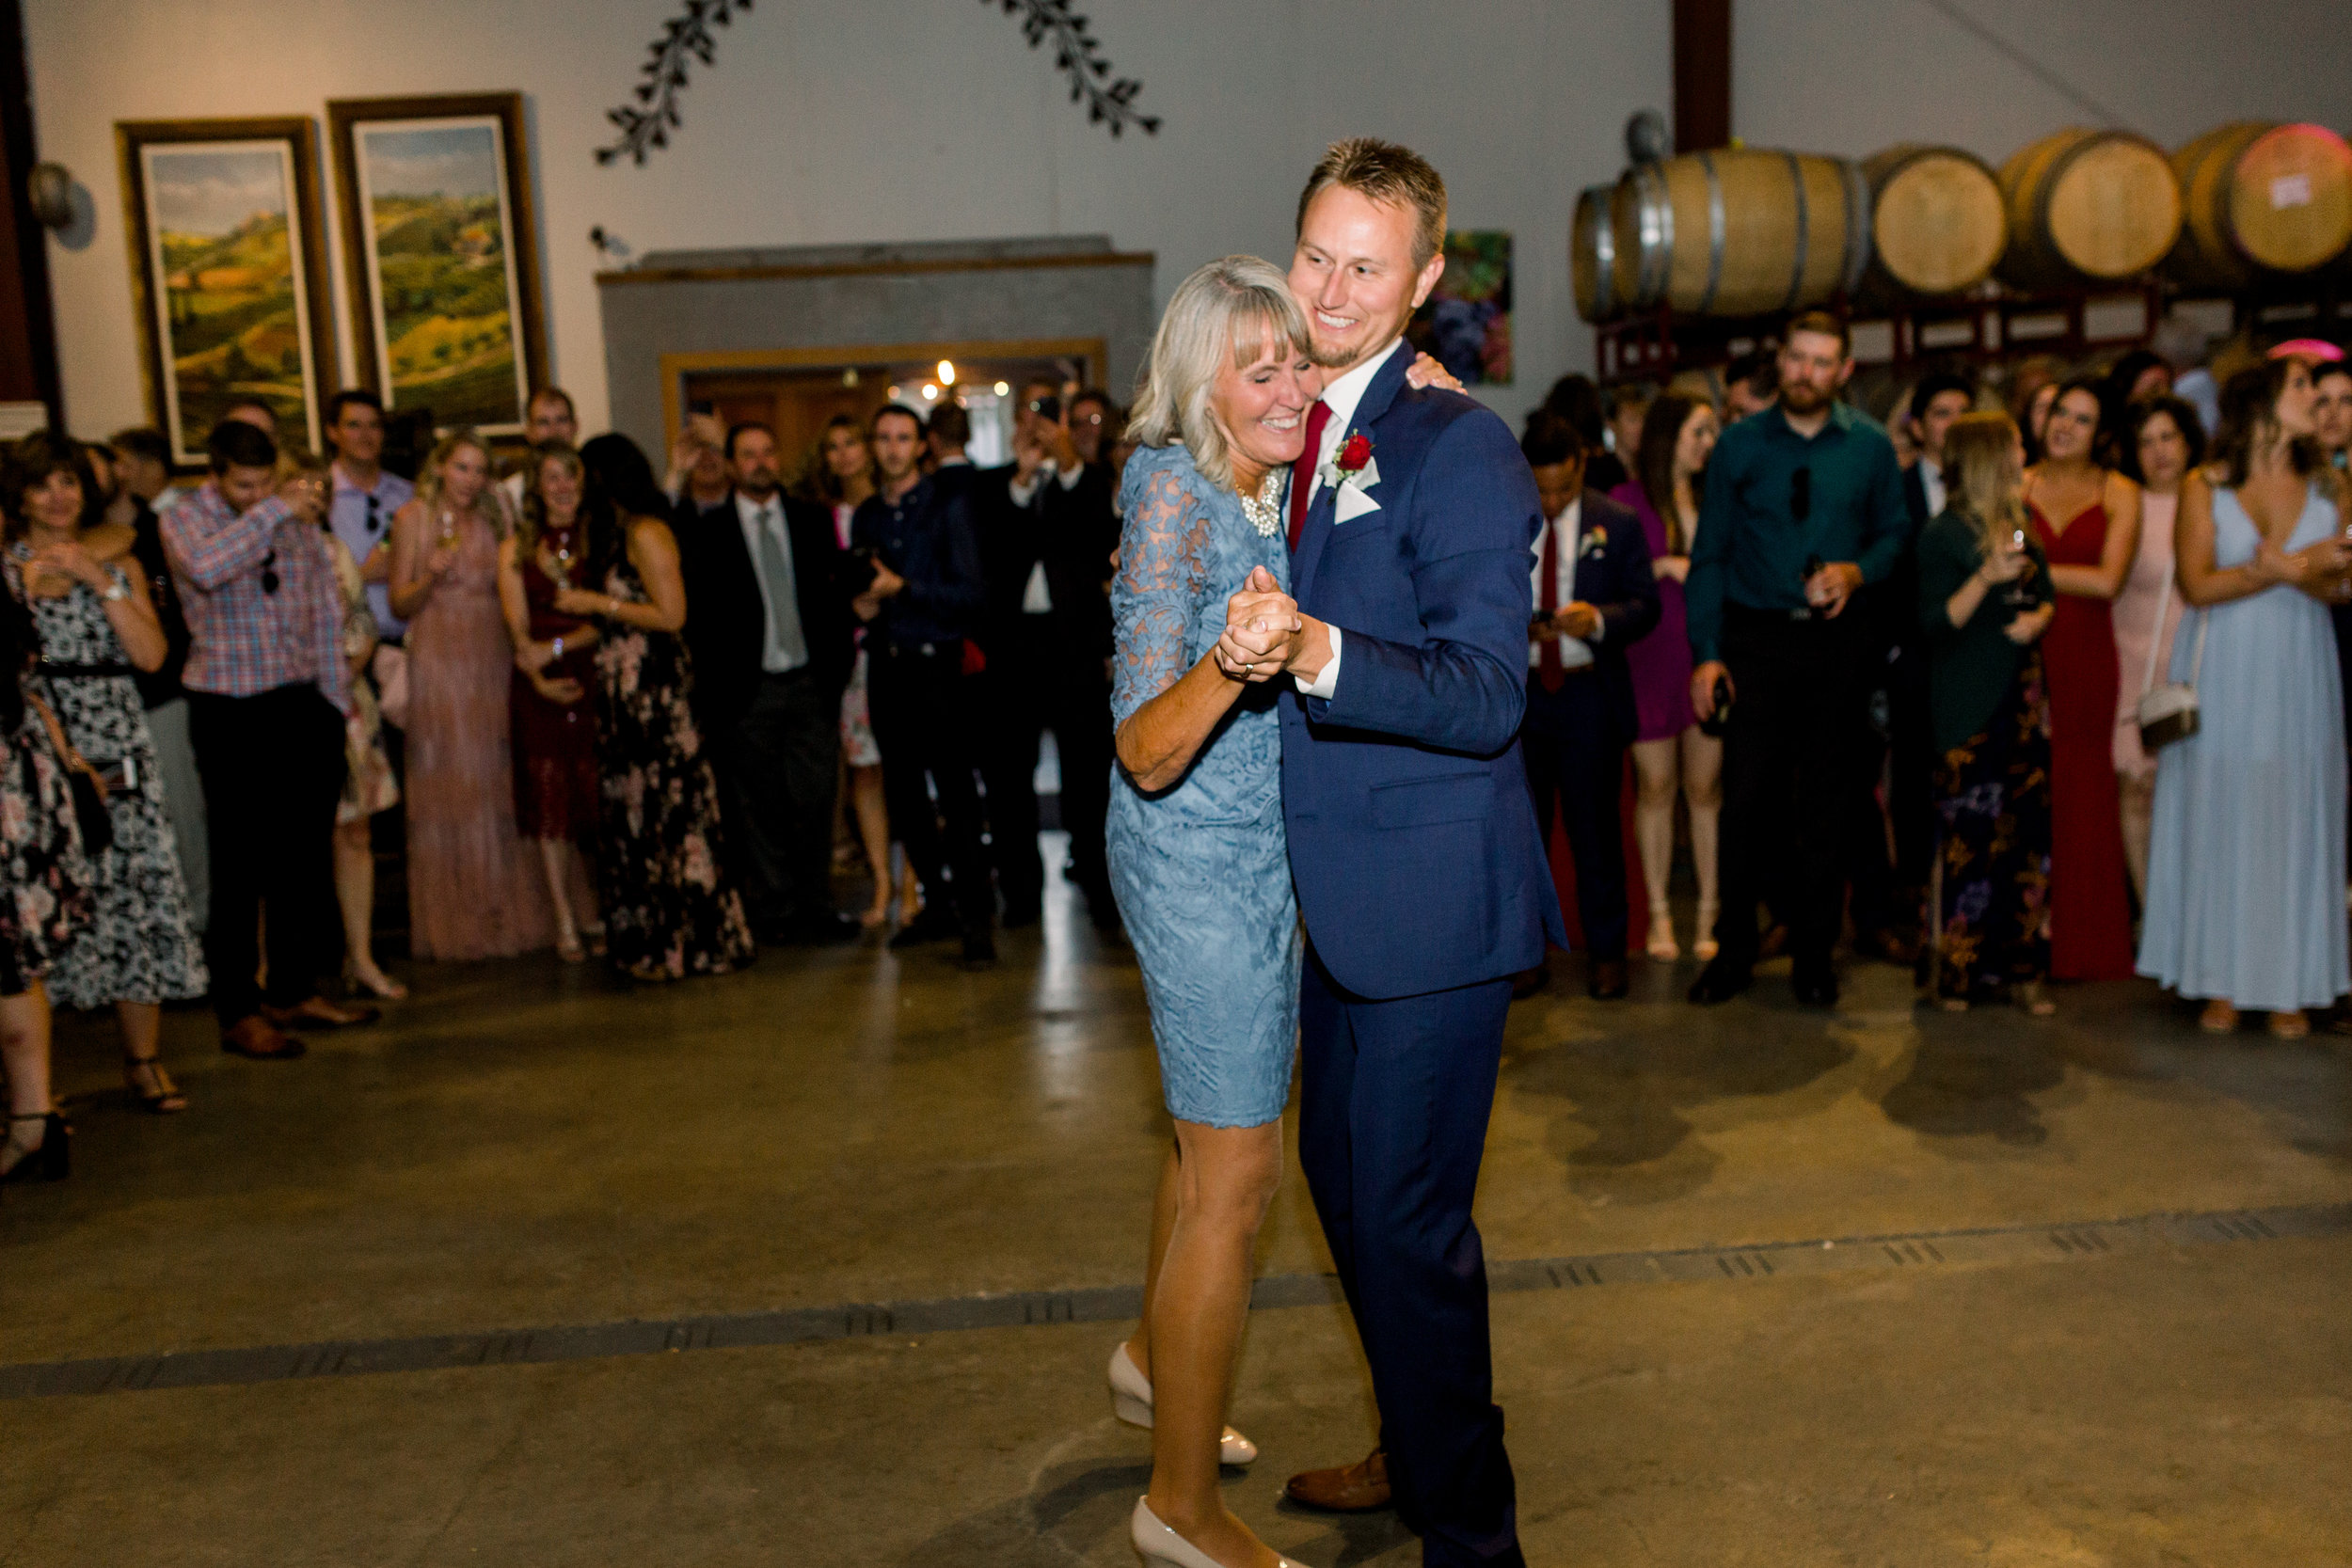 crooked-vine-winery-wedding-in-livermore-california-131.jpg